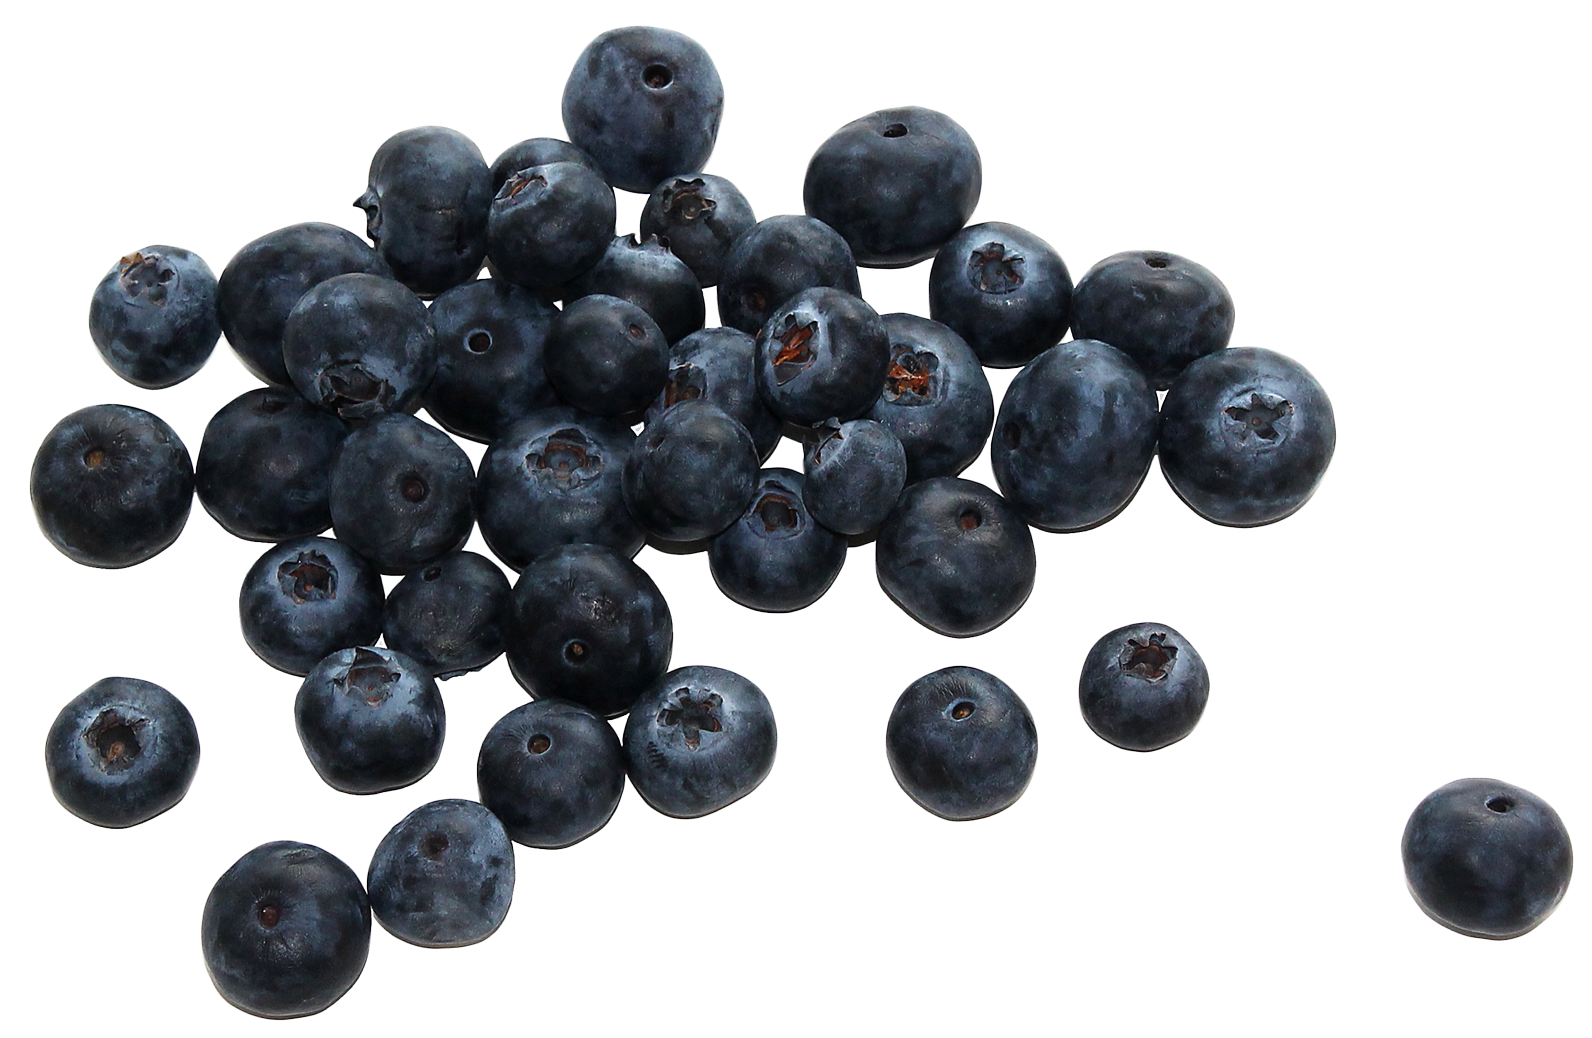 Berry Png - Group of Blueberries PNG Image - PurePNG | Free transparent CC0 ...